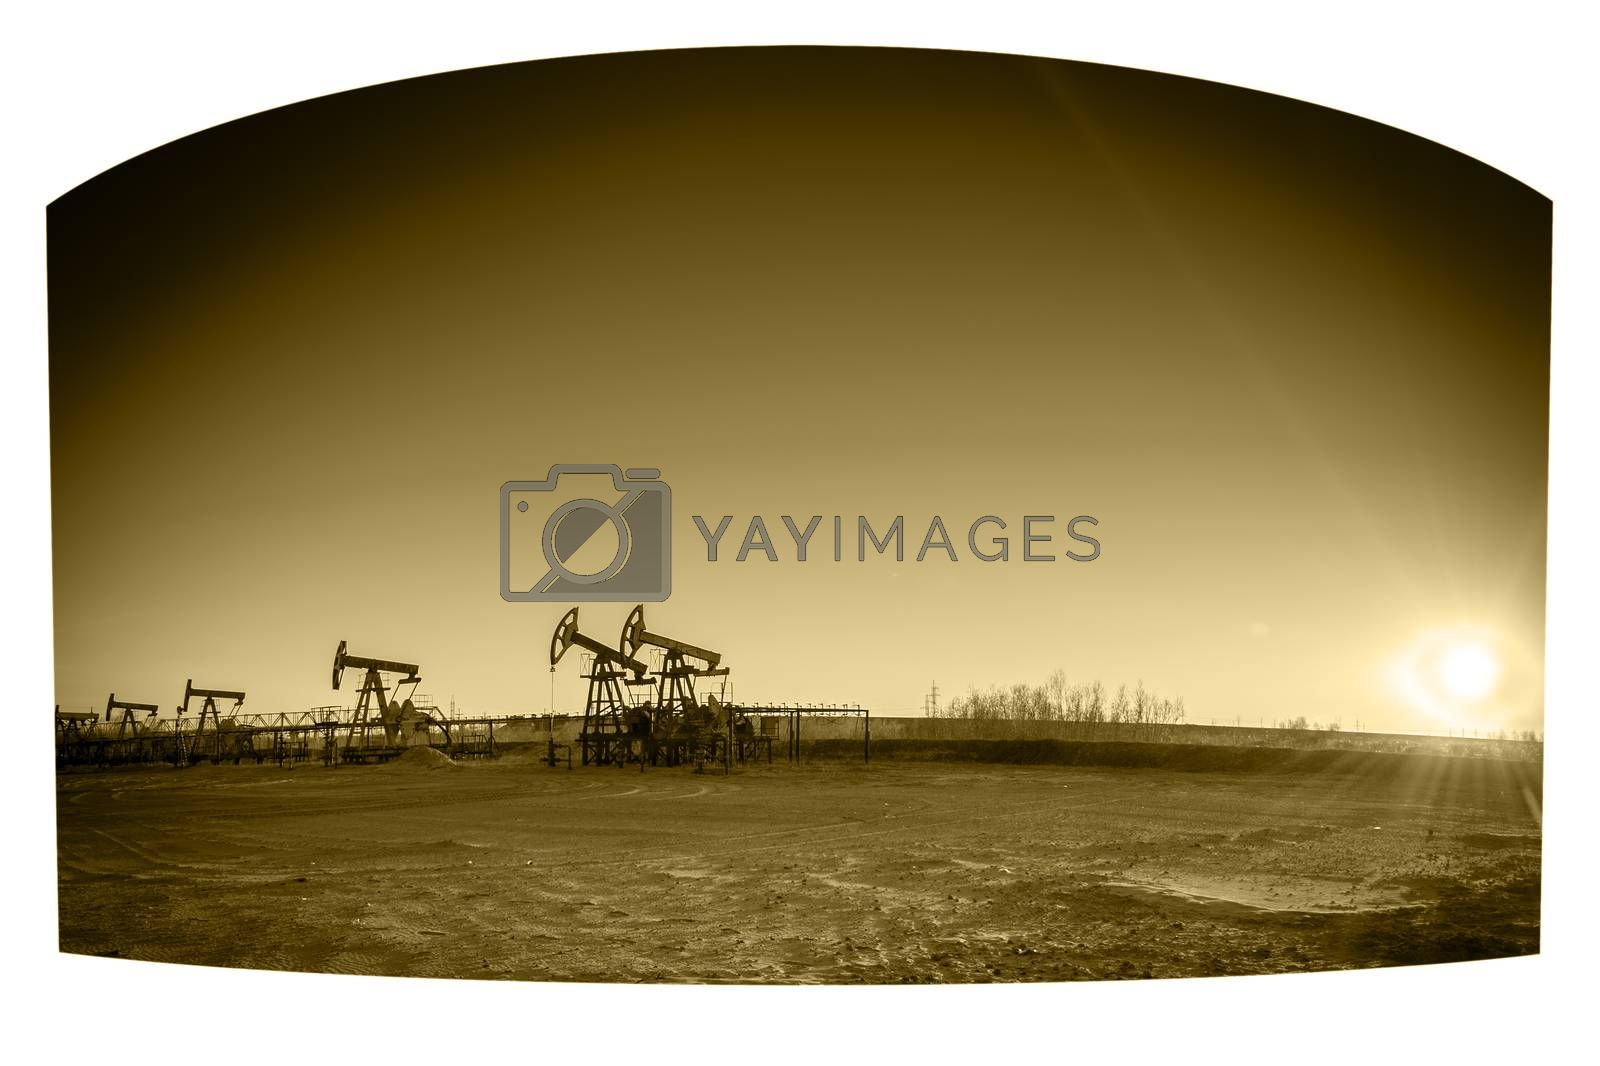 Oil pumps on the sunset sky background. Toned sepia.